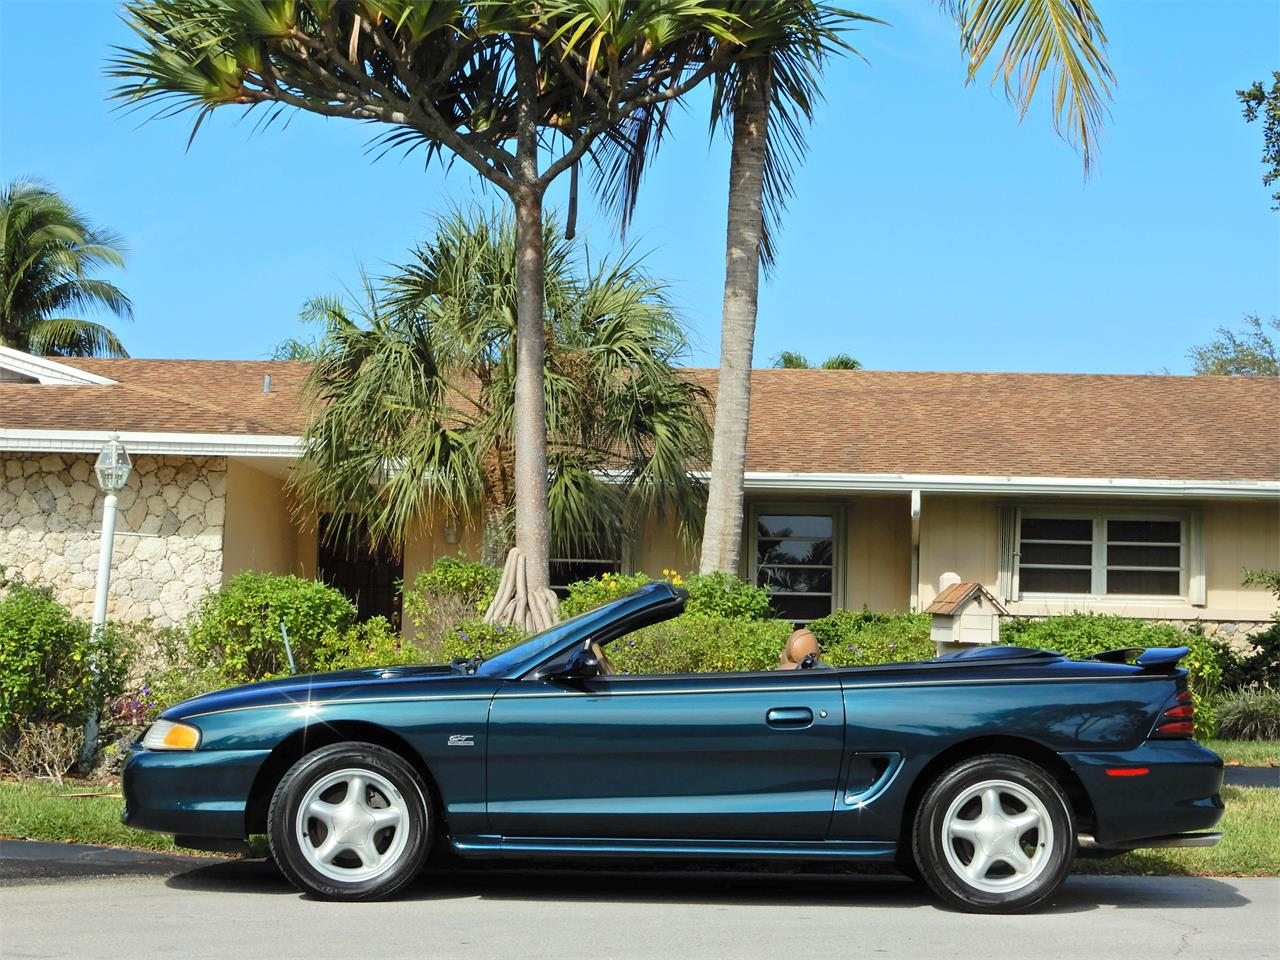 1994 Ford Mustang Gt For Sale Classiccars Com Cc 1184720